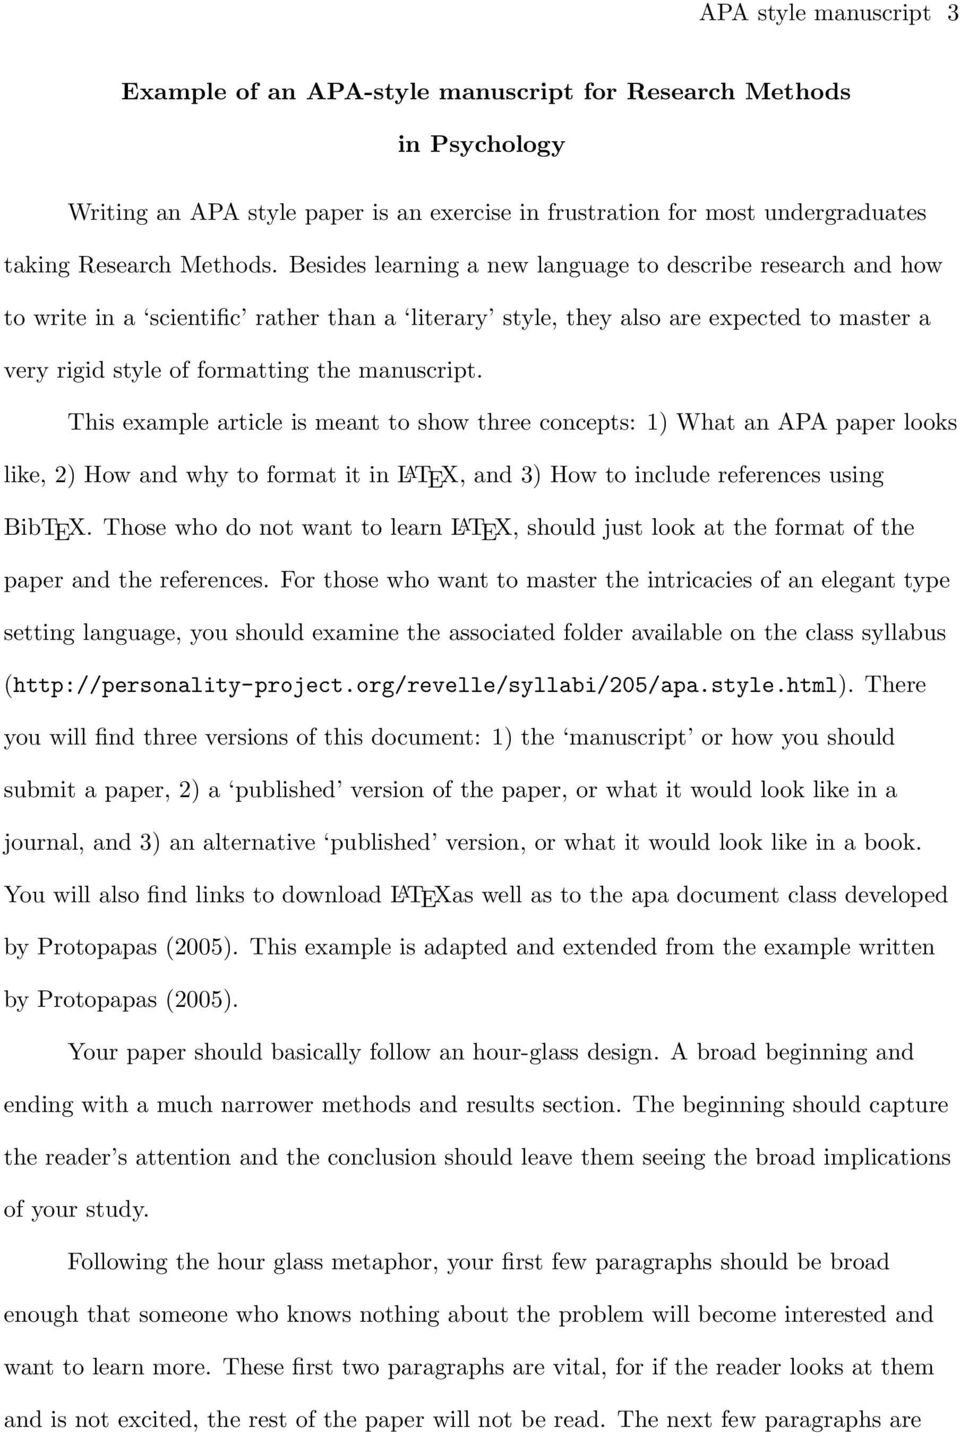 015 Methods Example For Research Paper Page 3 Breathtaking Writing Method Section Imrad Papers Full